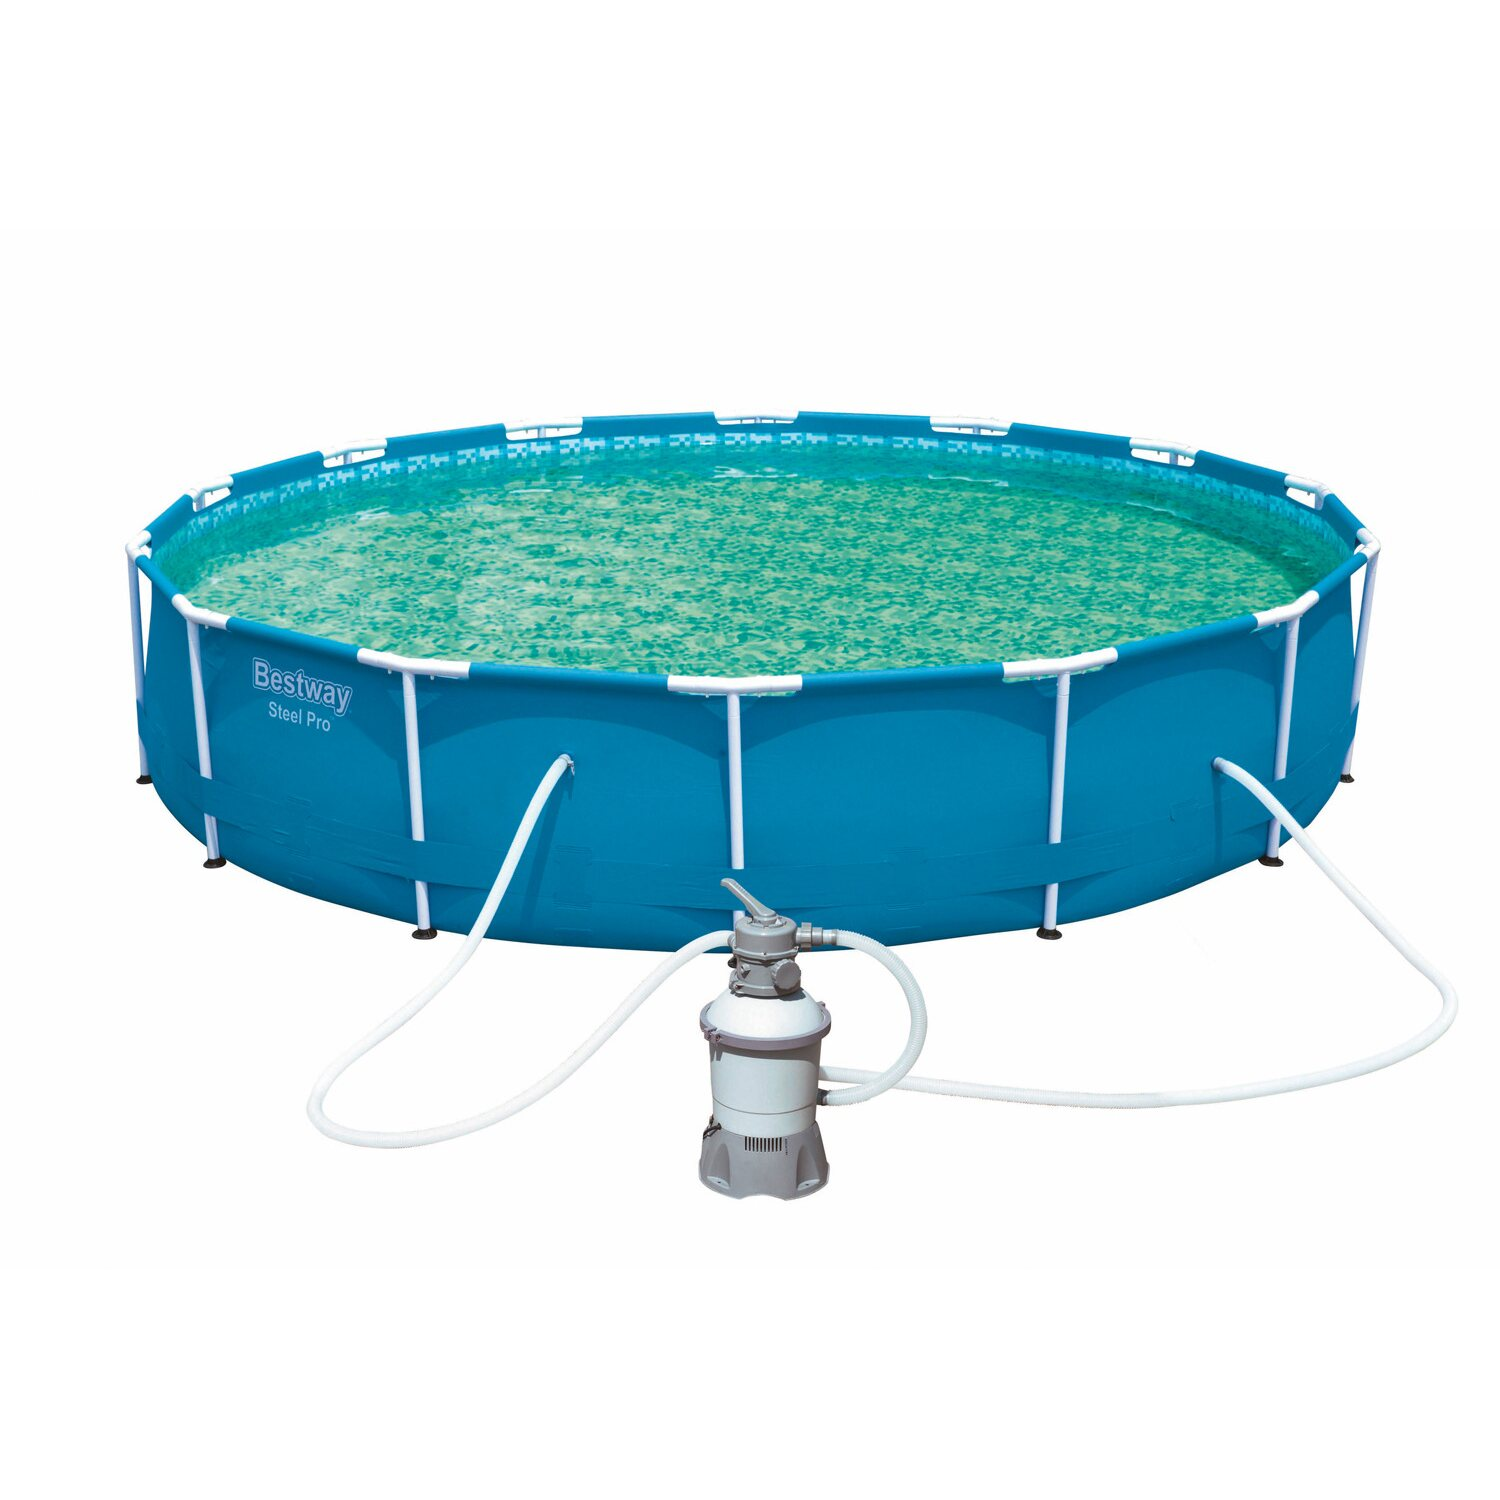 Bestway steel pro frame pool set 427 cm x 84 cm for Pool obi baumarkt